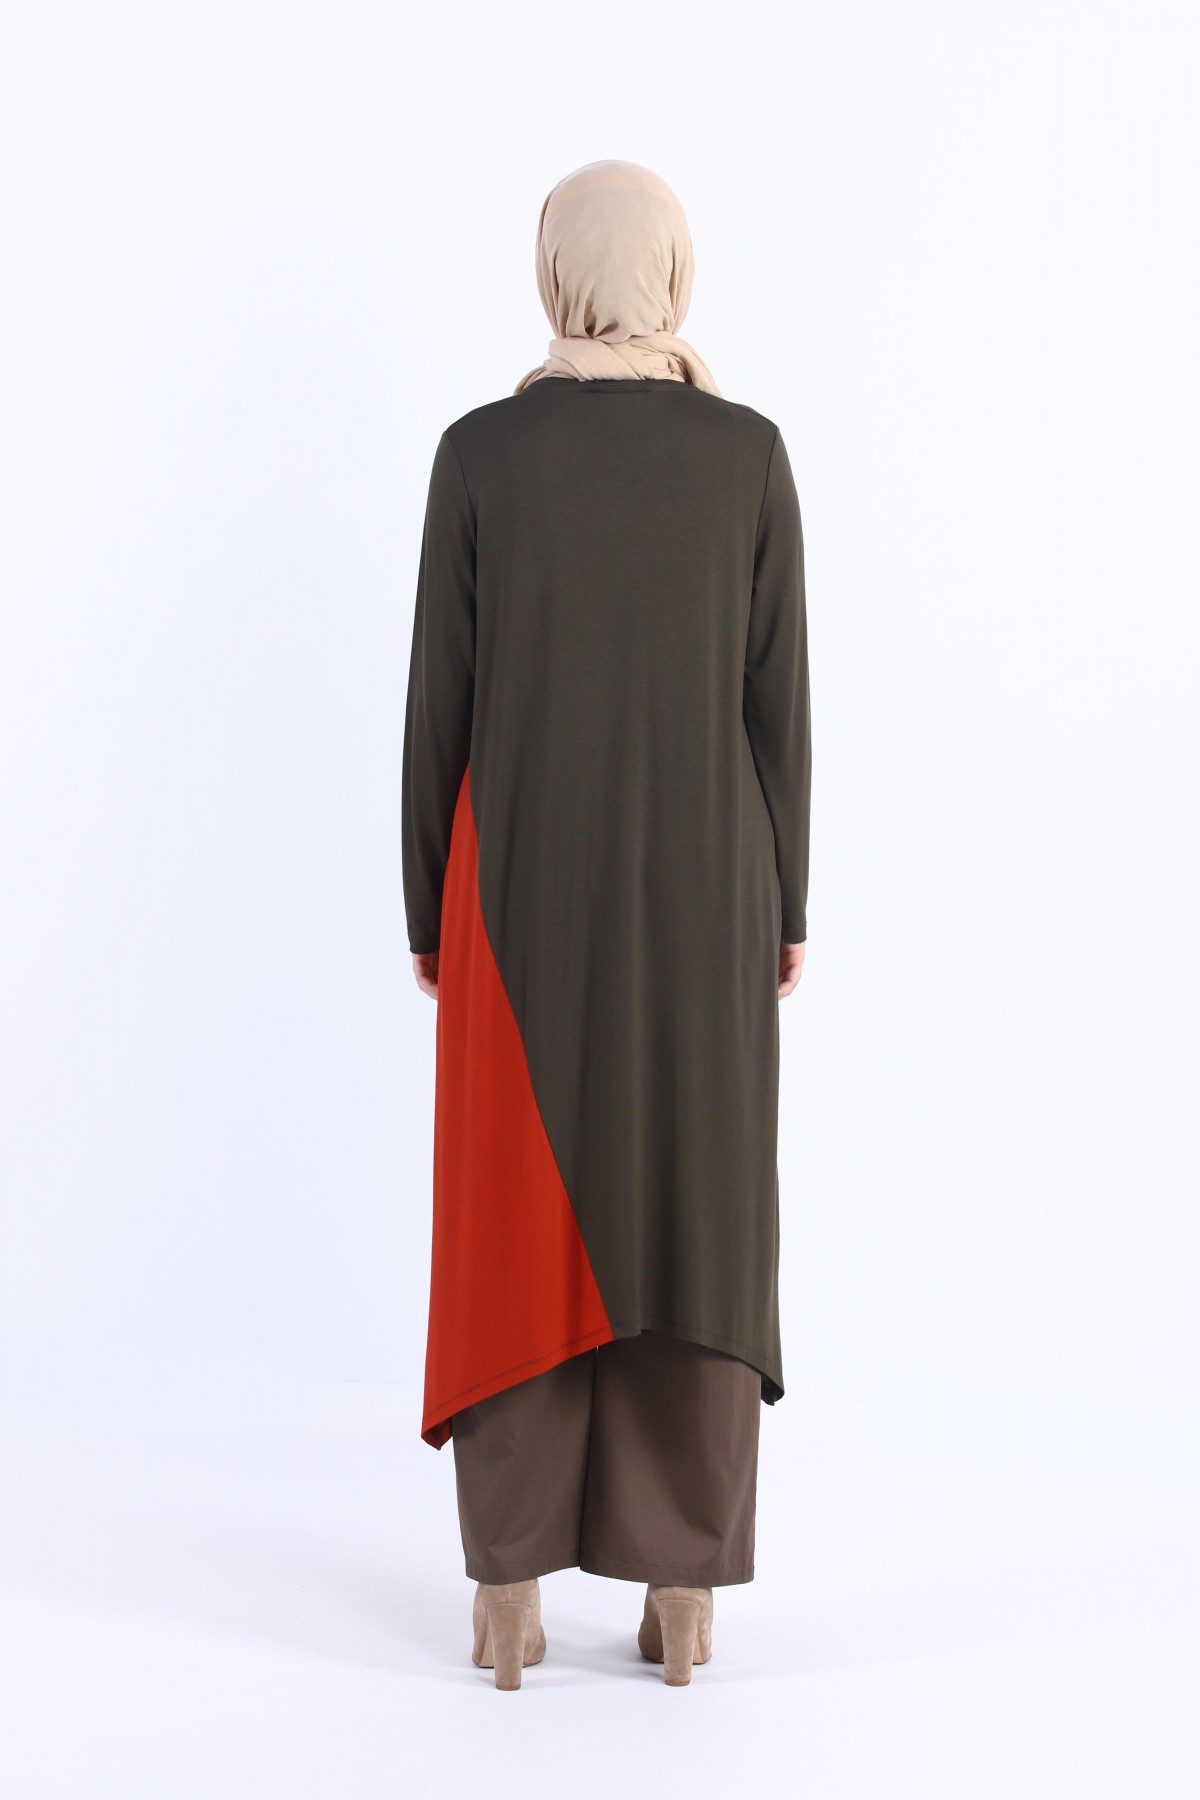 Asymmetric Cut Two Color Tunic